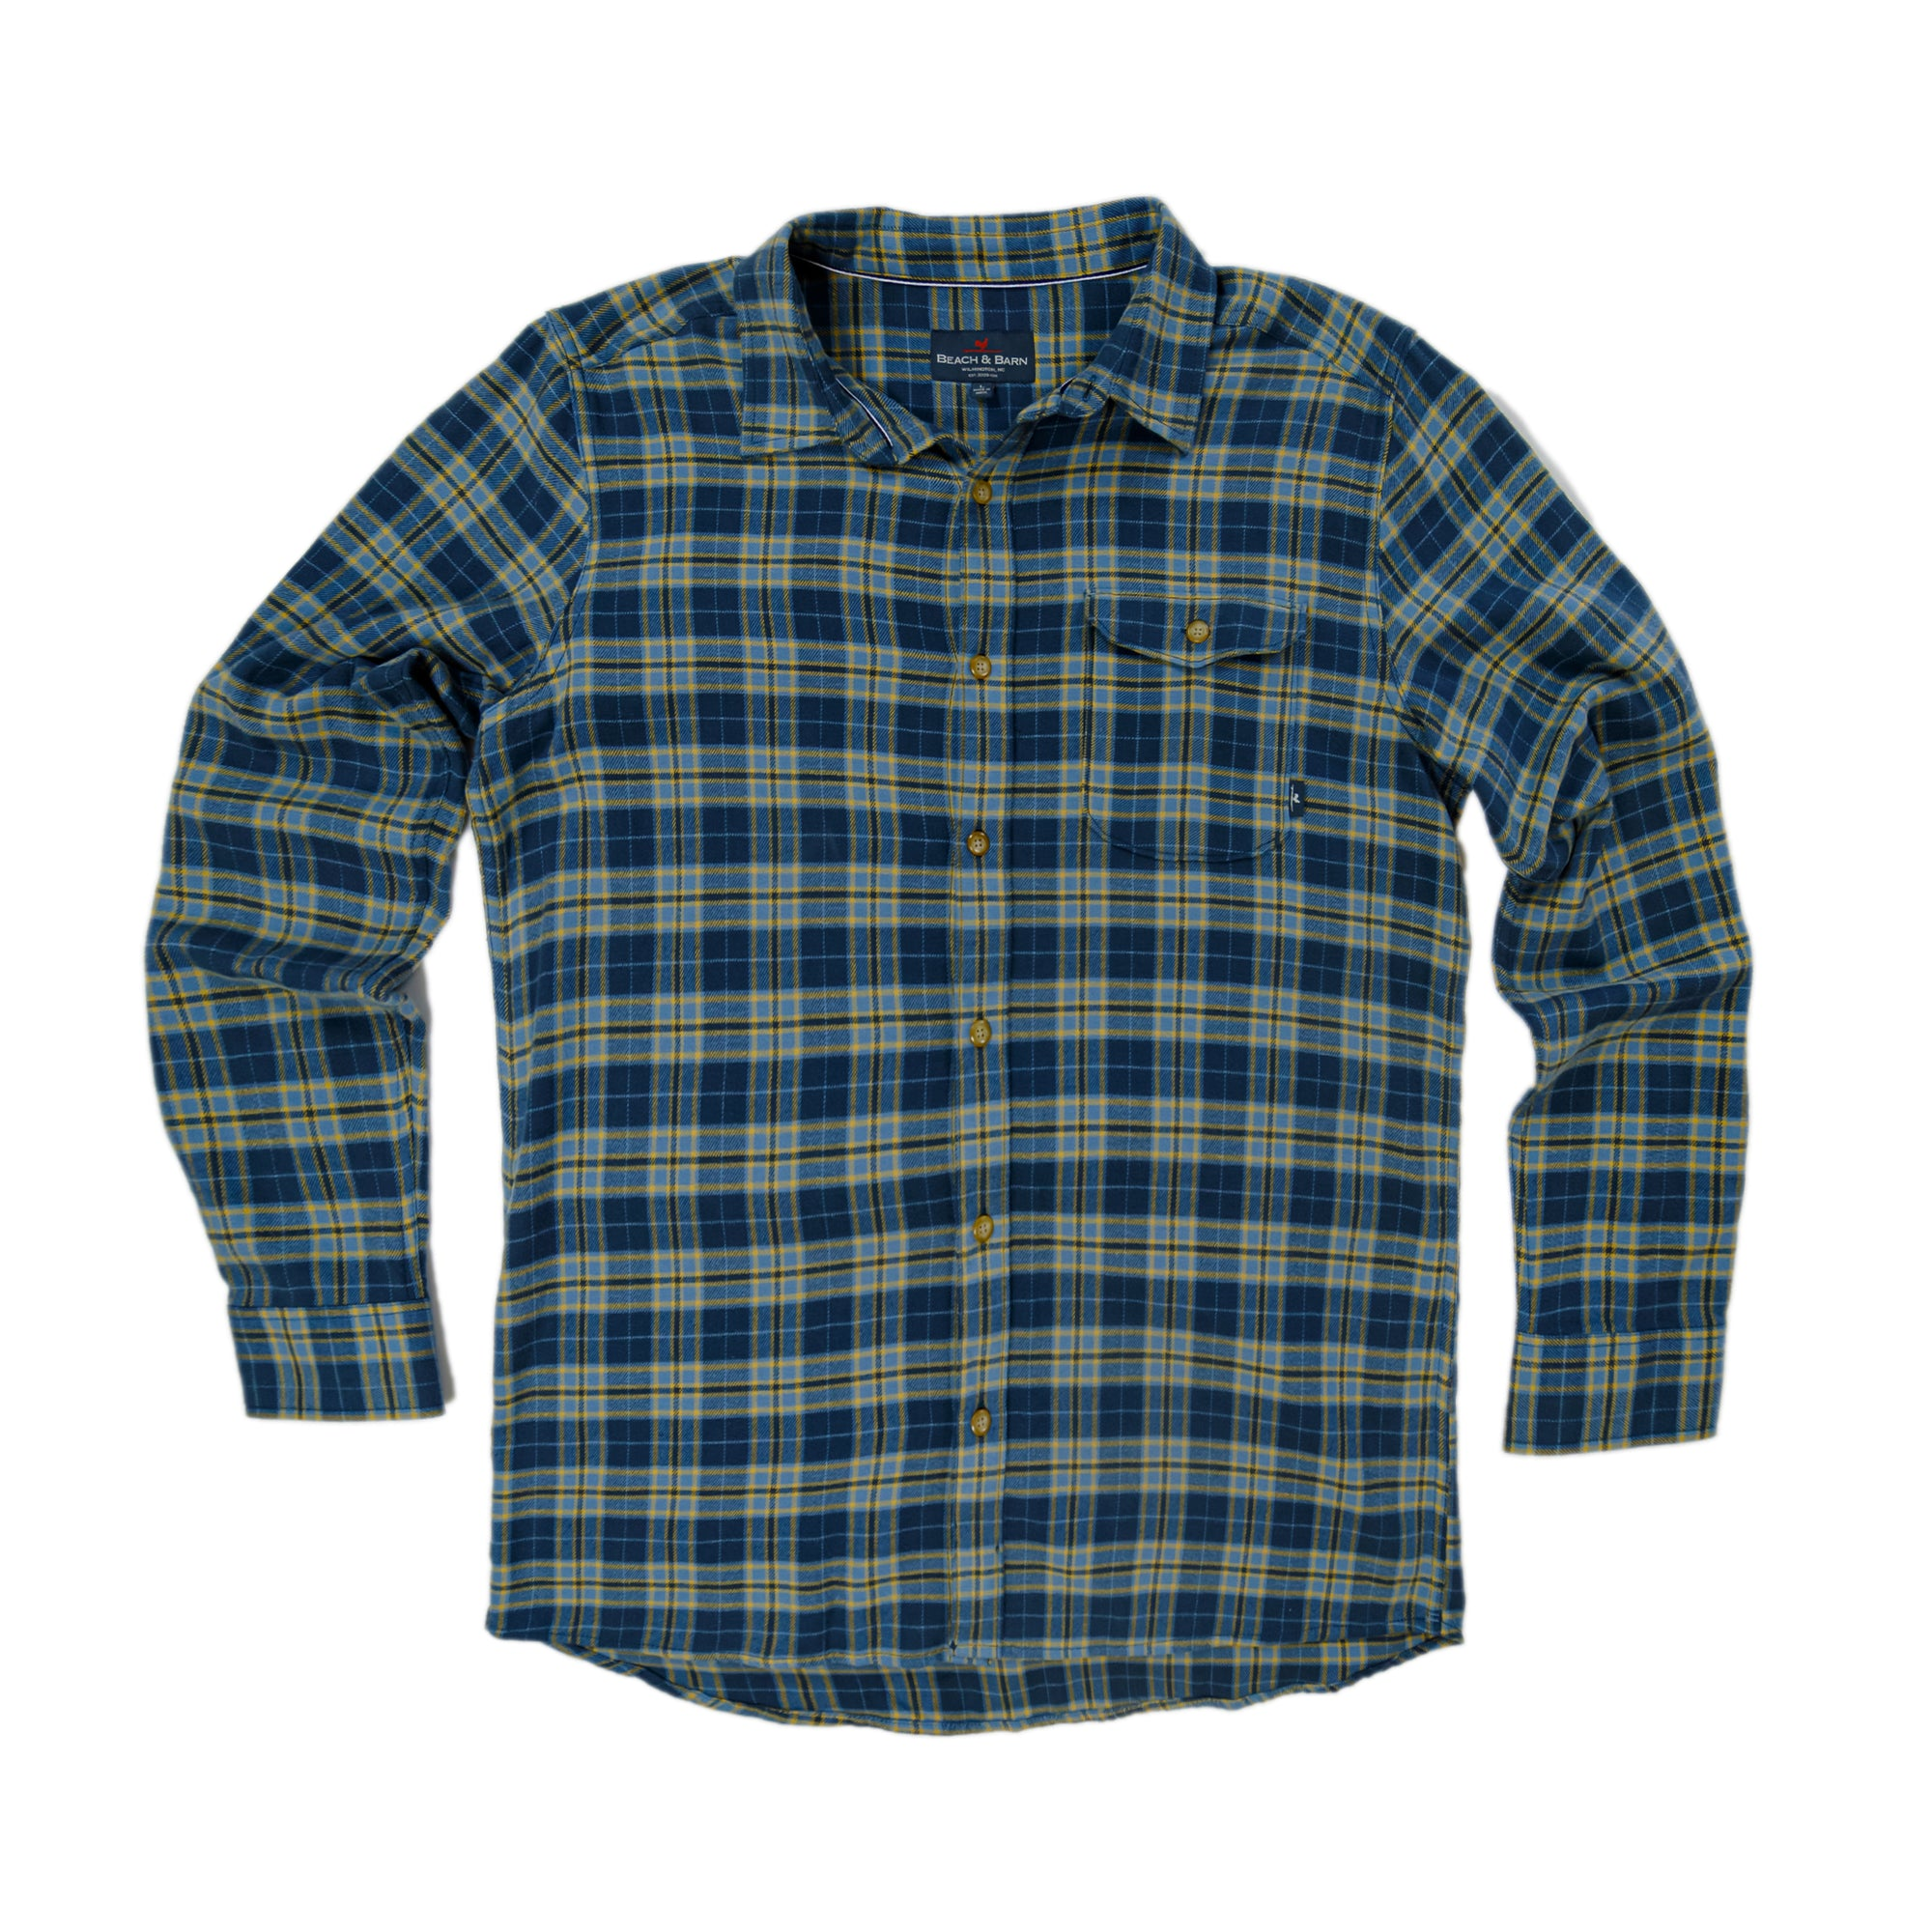 Masonboro Flannel - Steel Blue Plaid